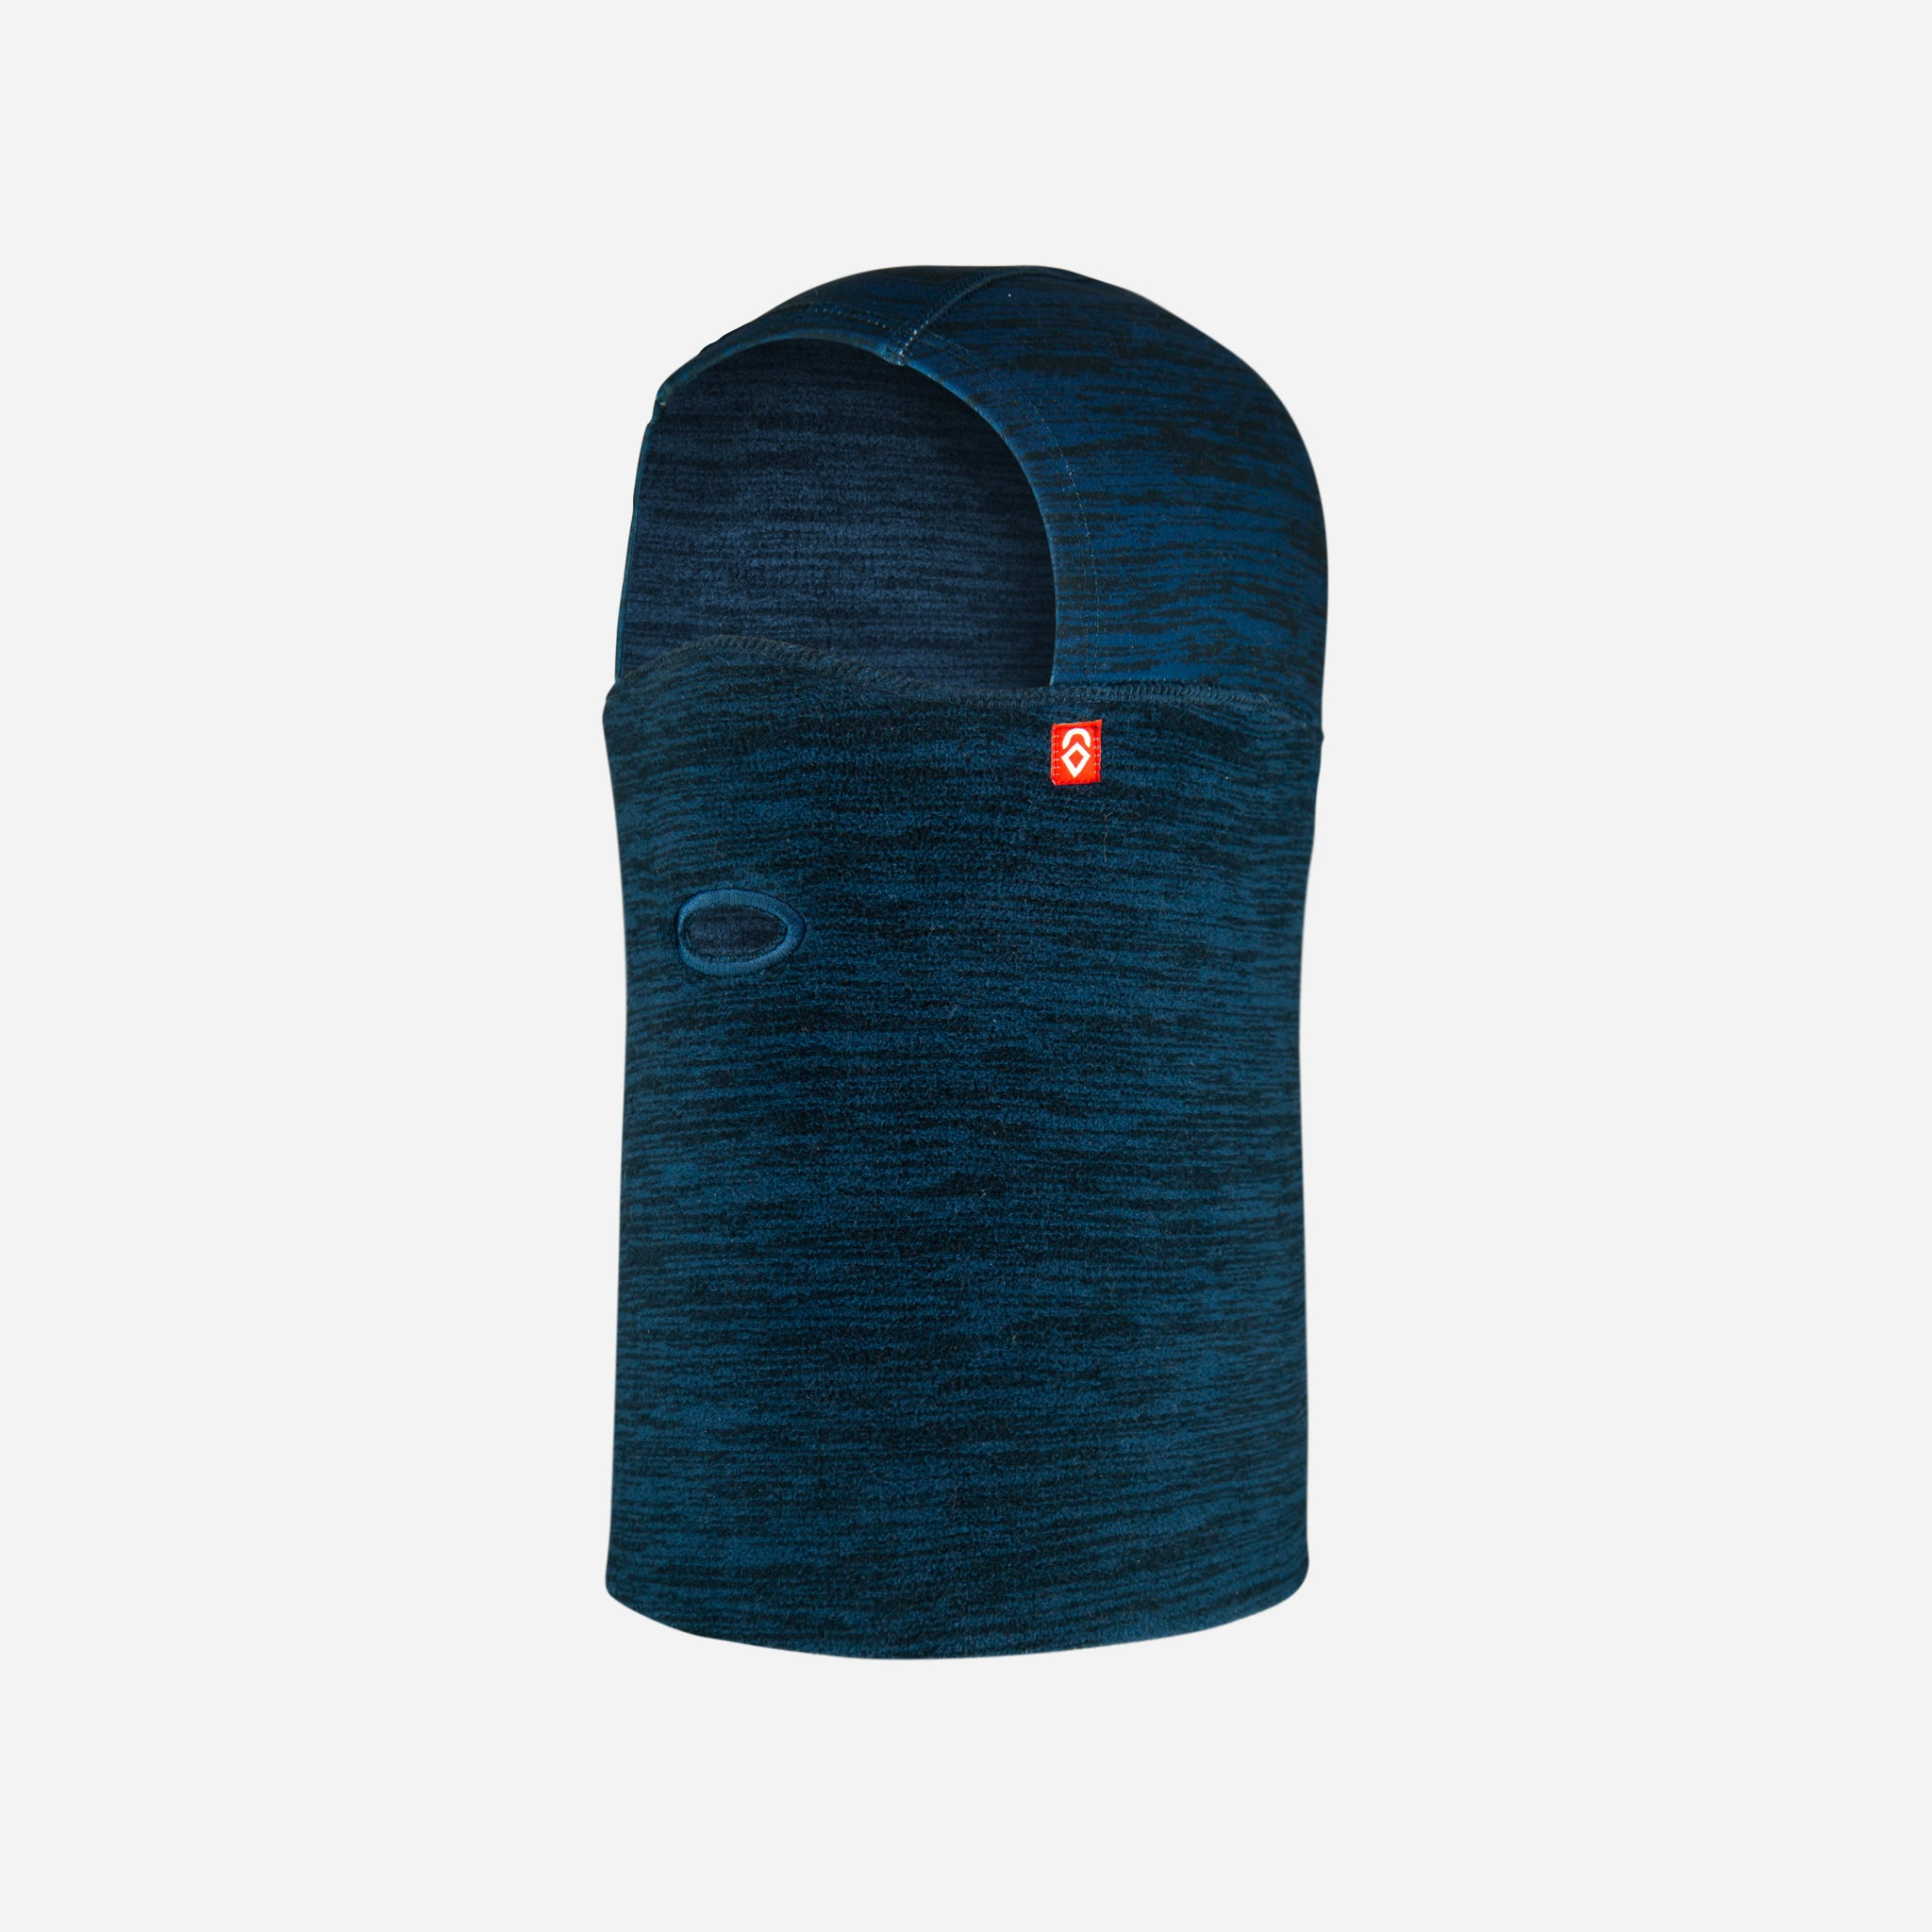 Balaclava Combo Microfleece + Drytech Heather Navy